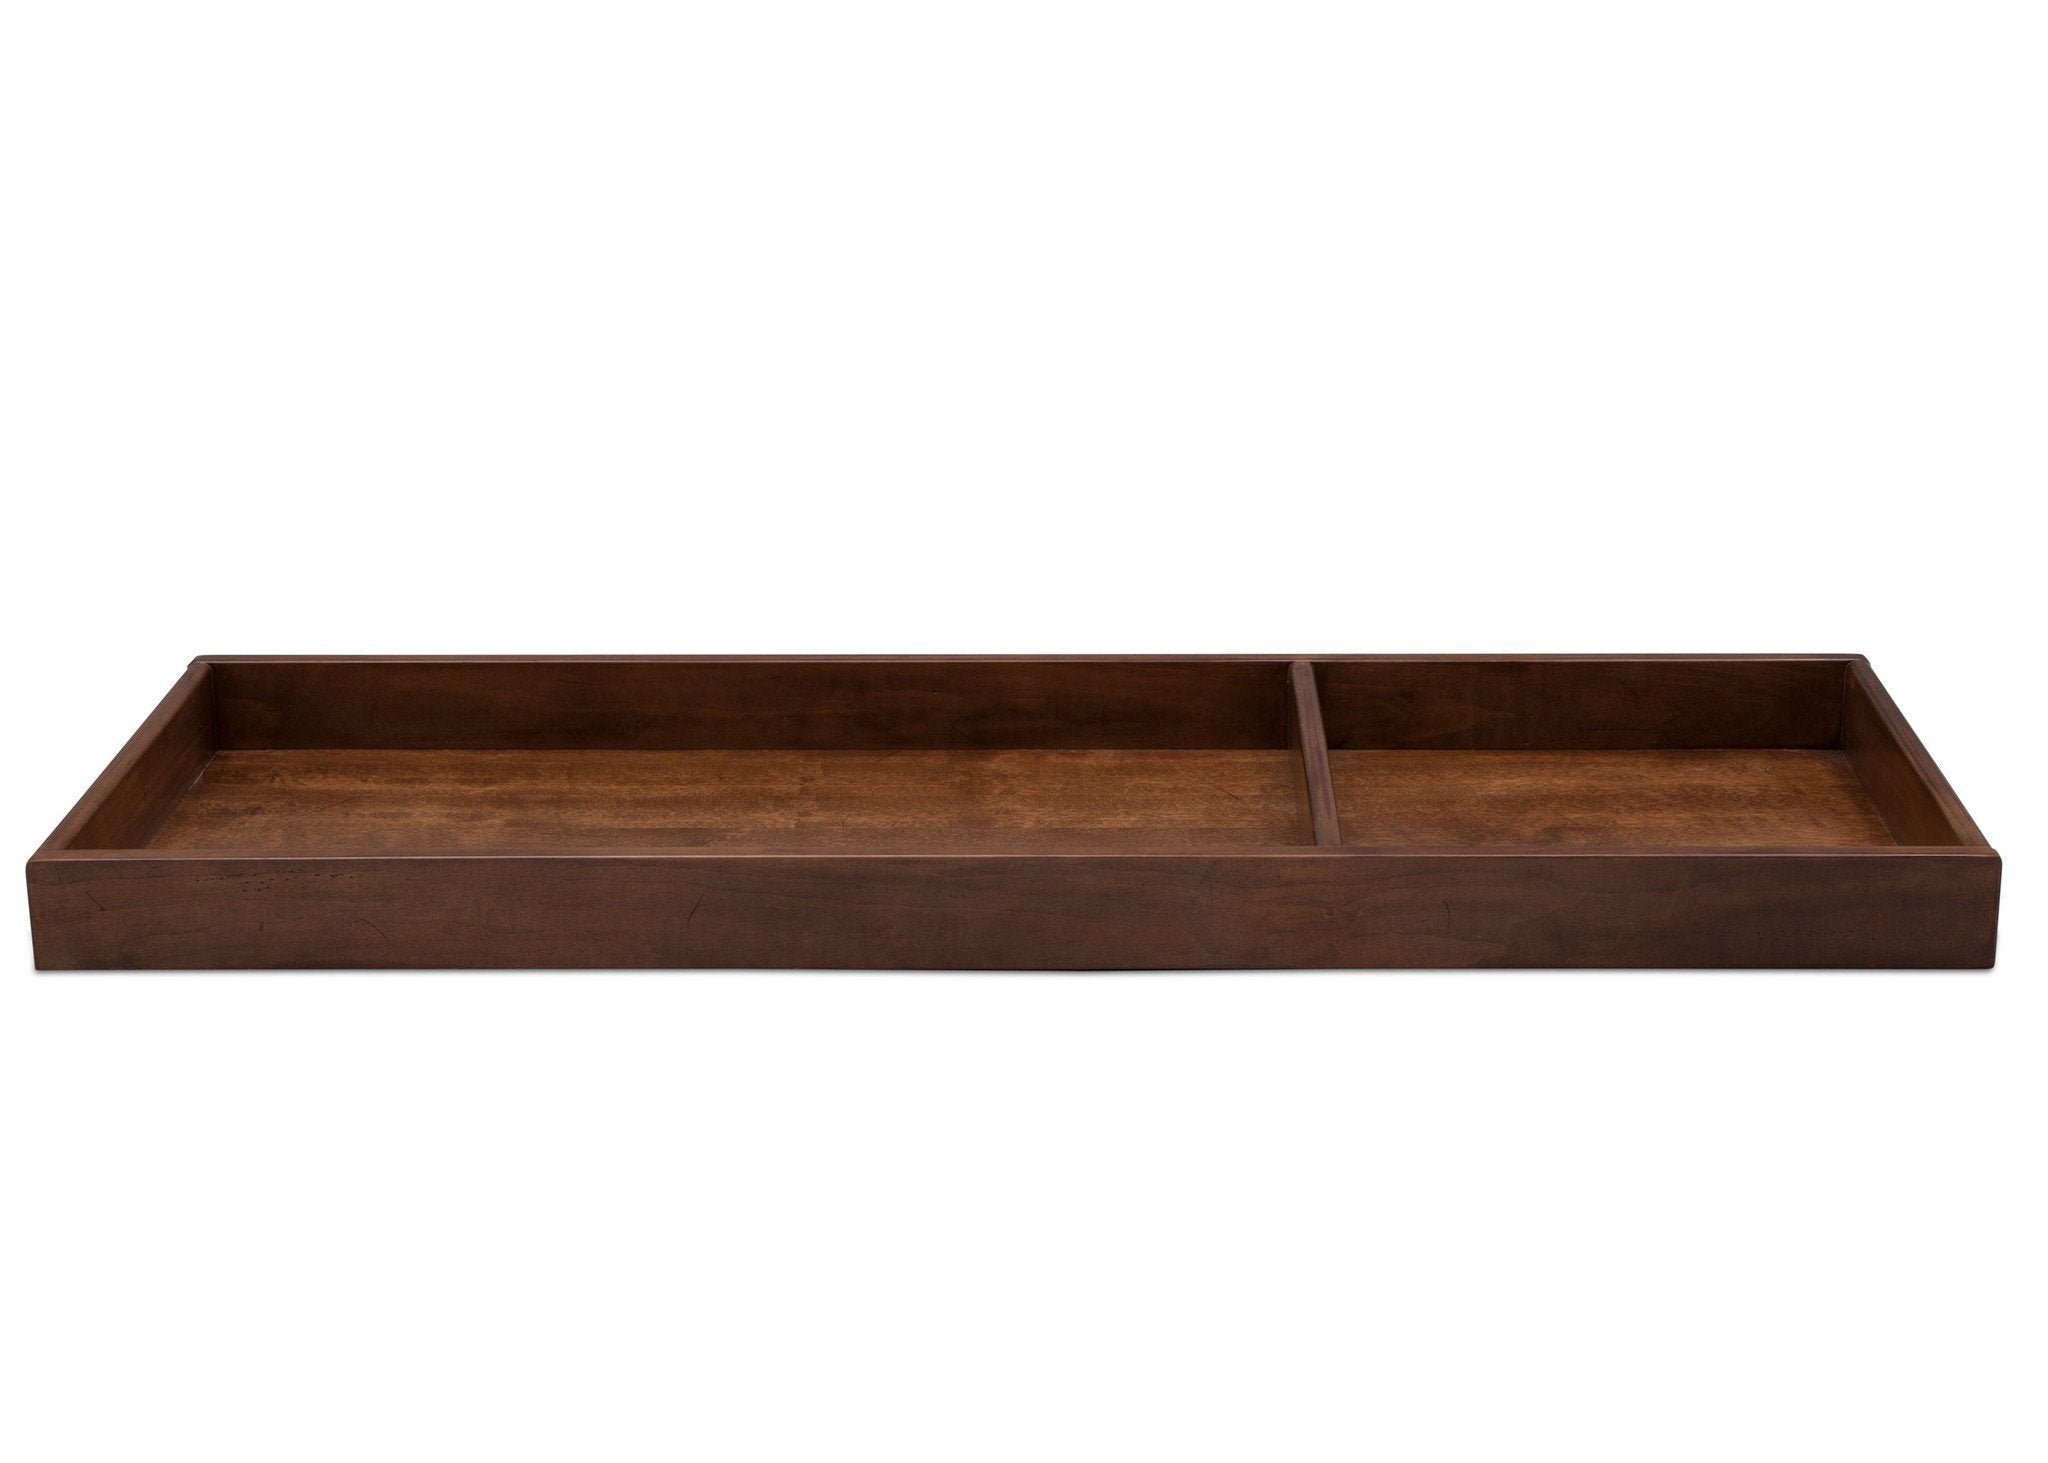 Simmons Kids Antique Chestnut (2100) Tivoli Changing Tray, Front View, b1b